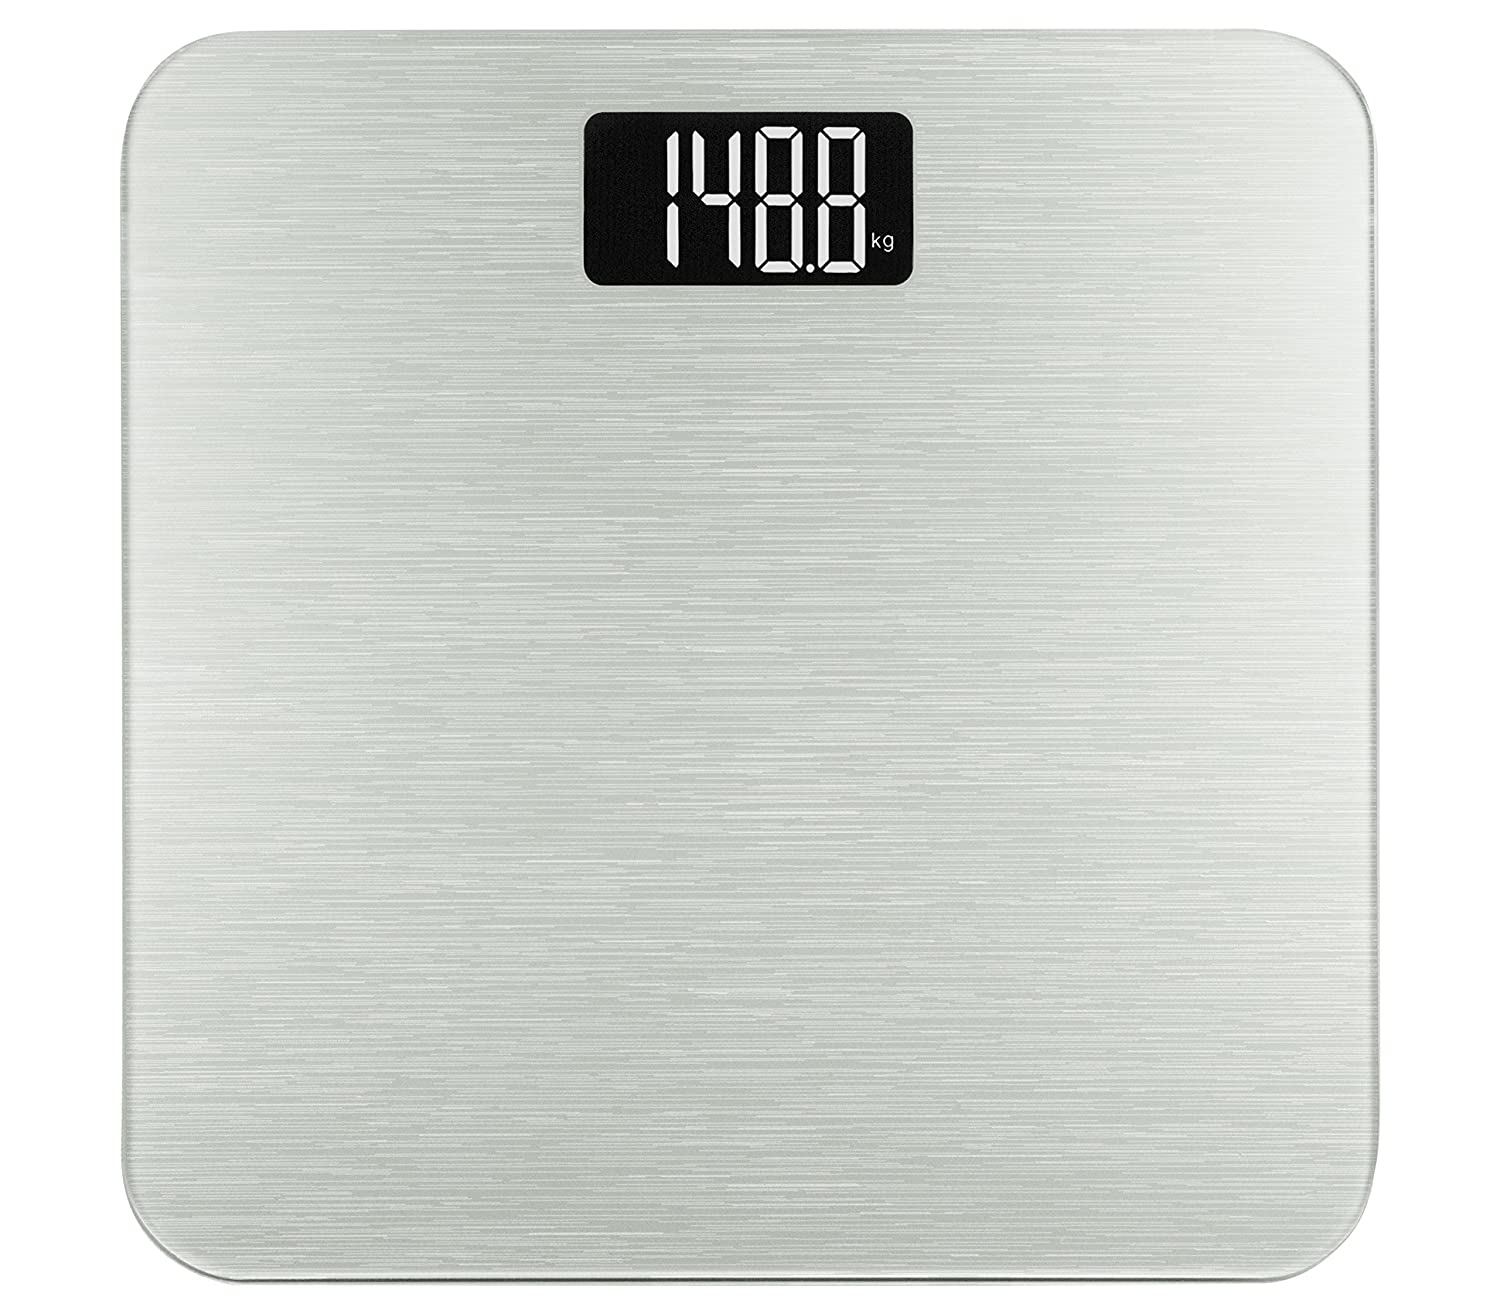 Amazon scale bathroom - Amazon Com Smart Weigh Digital Body Weight Scale Tempered Glass Step On Technology 400 Pounds Silver Health Personal Care